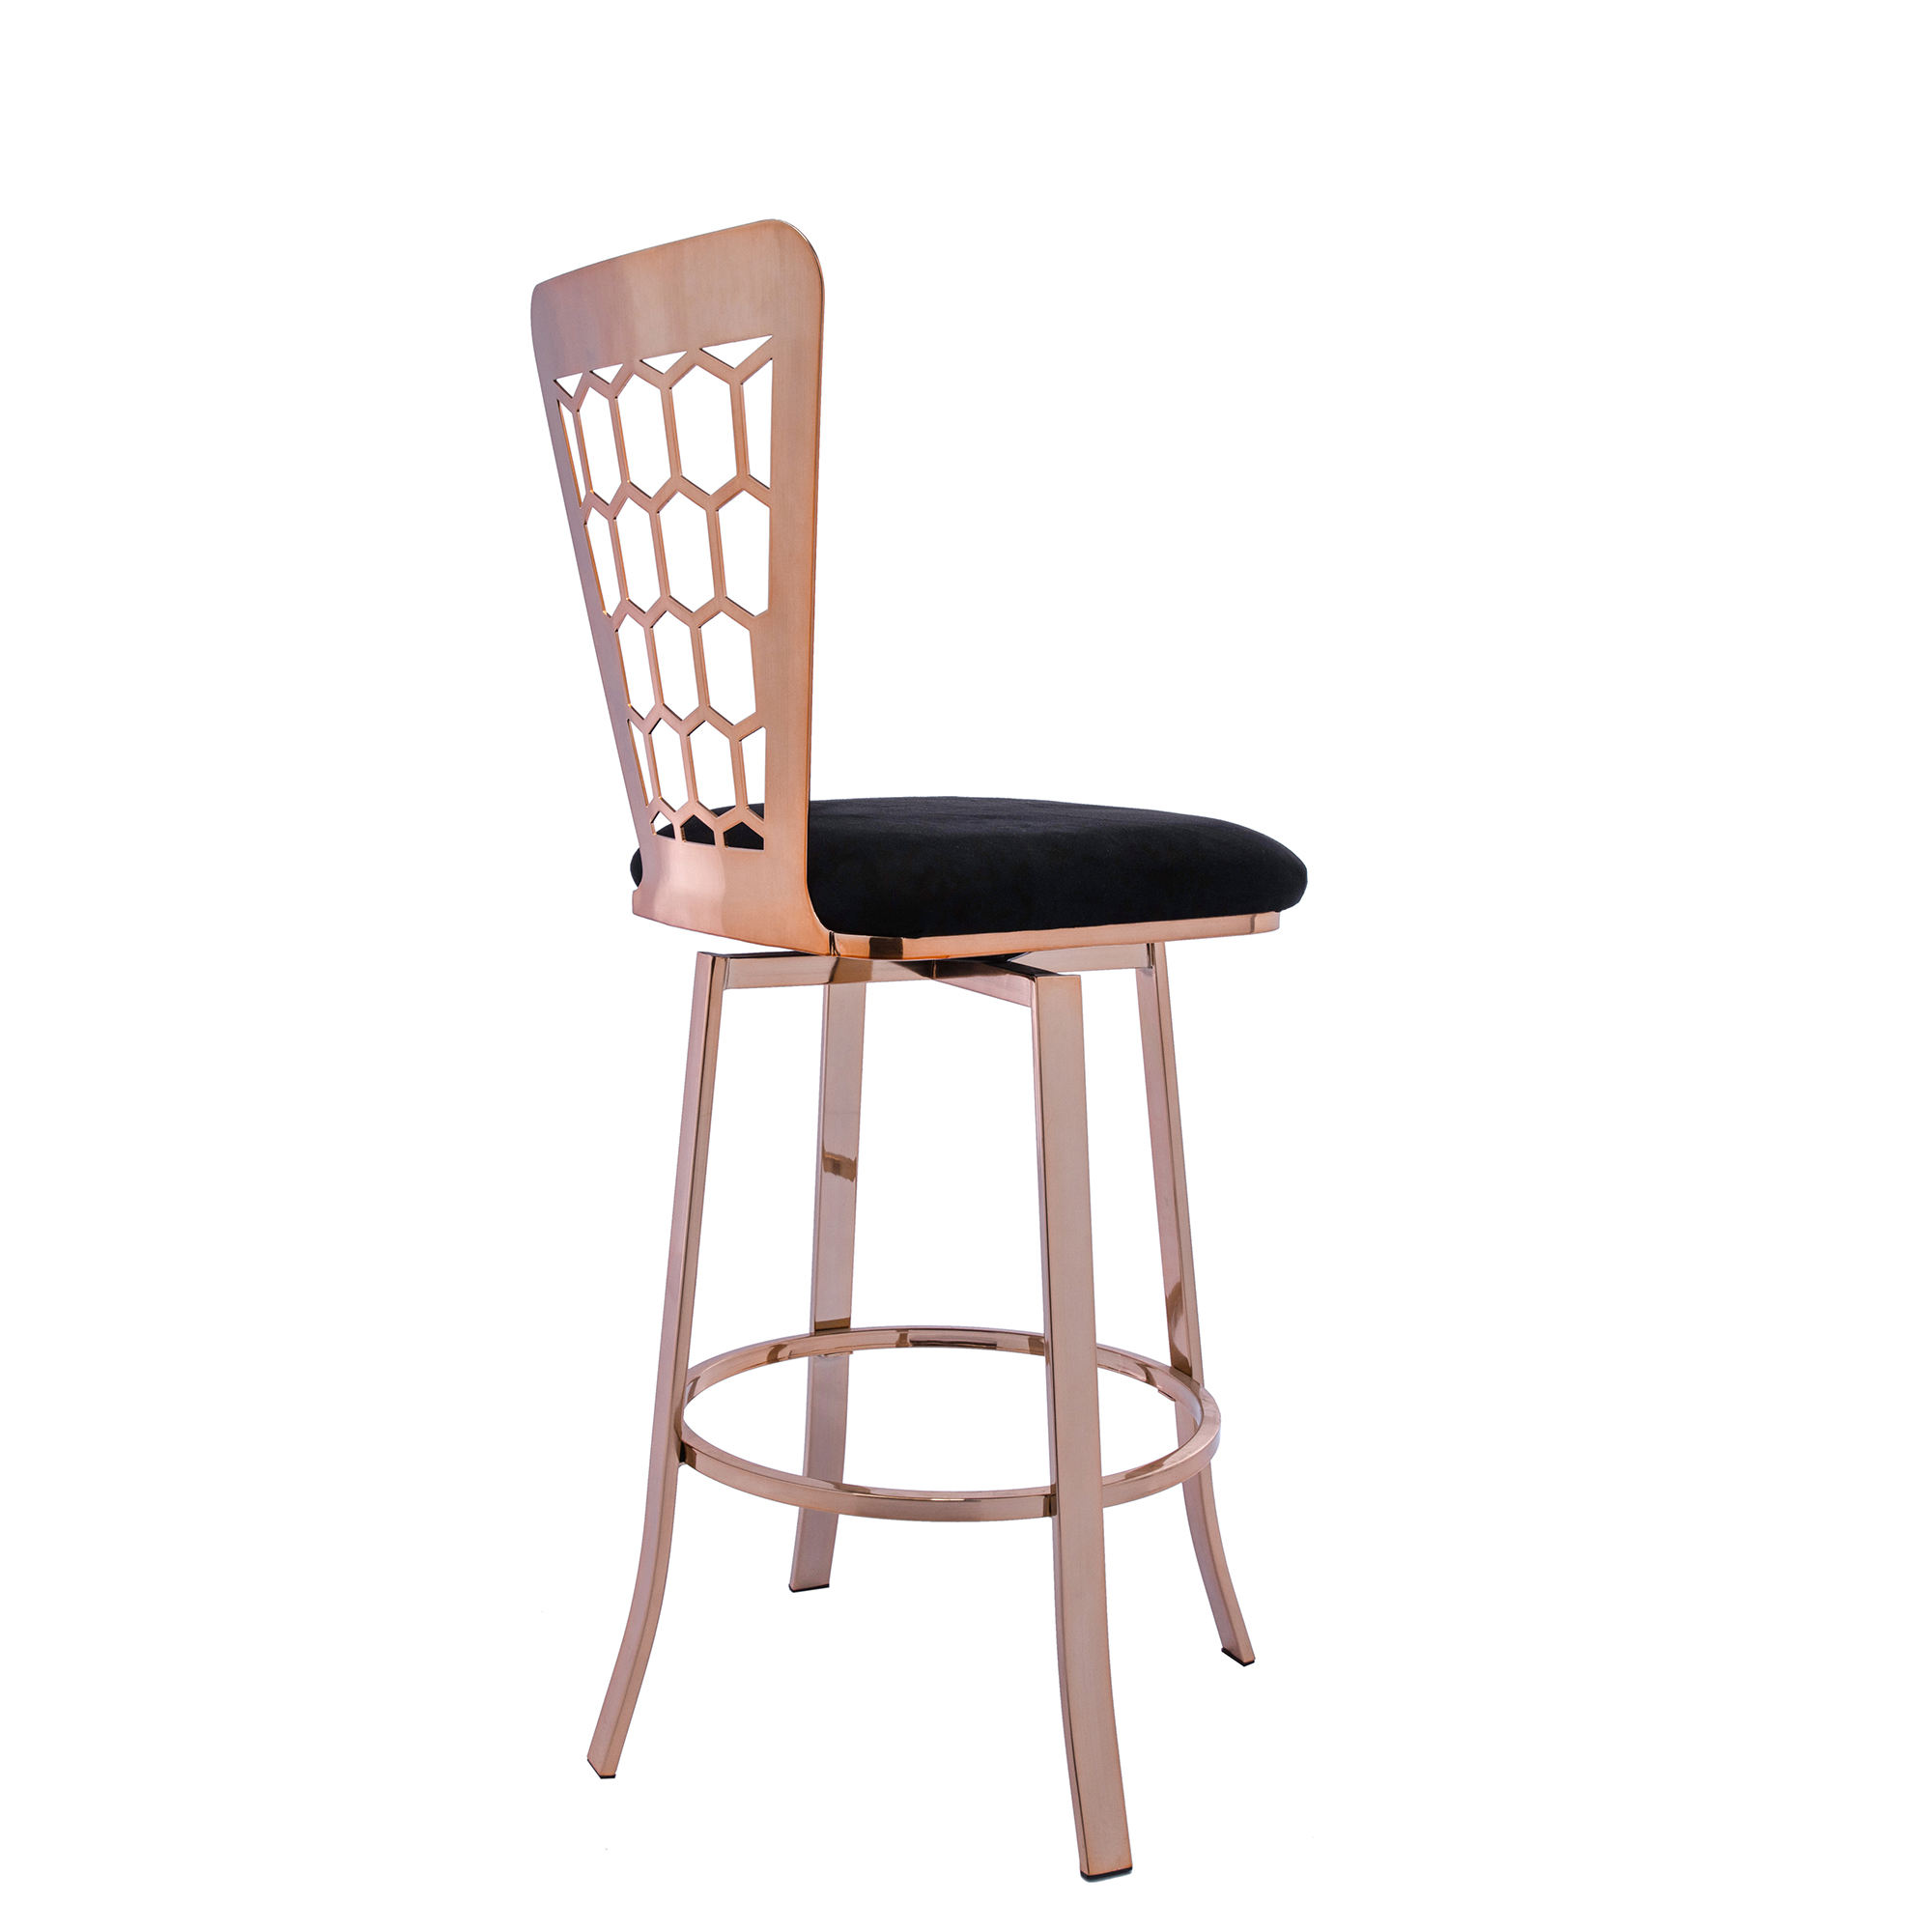 Modern Furniture Black Velvet Fabric Upholstered Rose Gold Metal High Counter Bar Stools Chairs